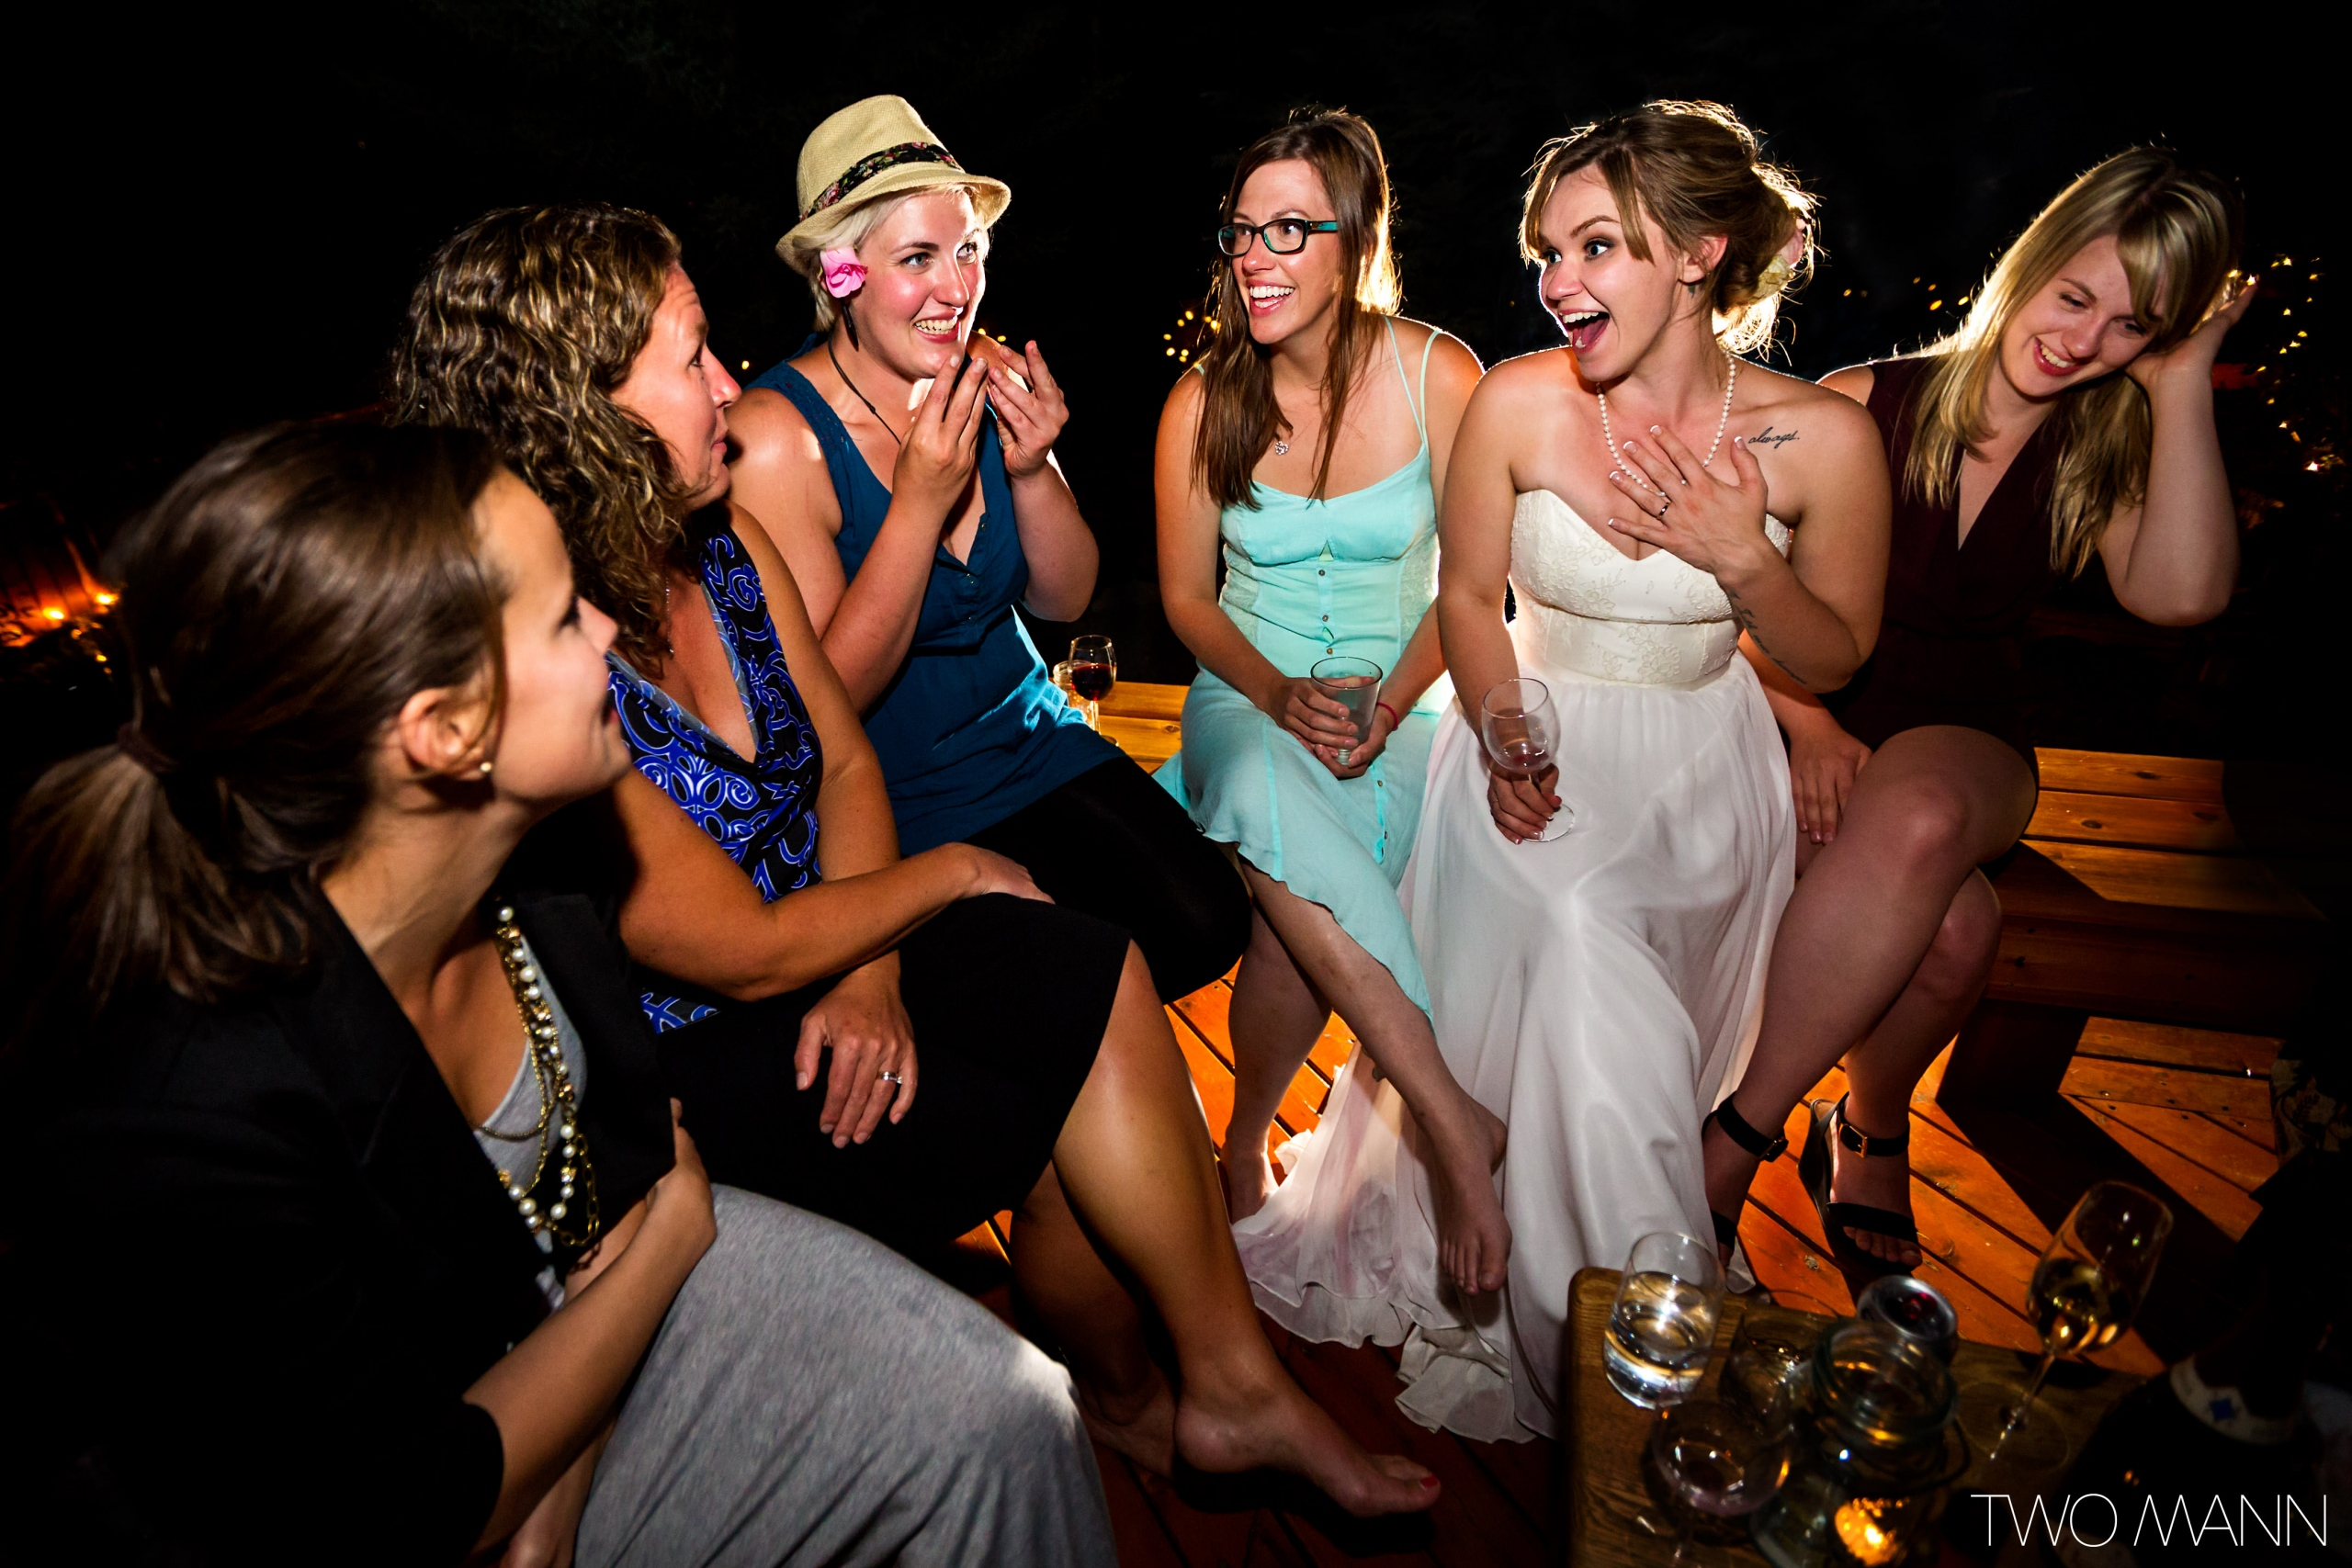 a bride sitting and chatting with girl friends on a deck at night